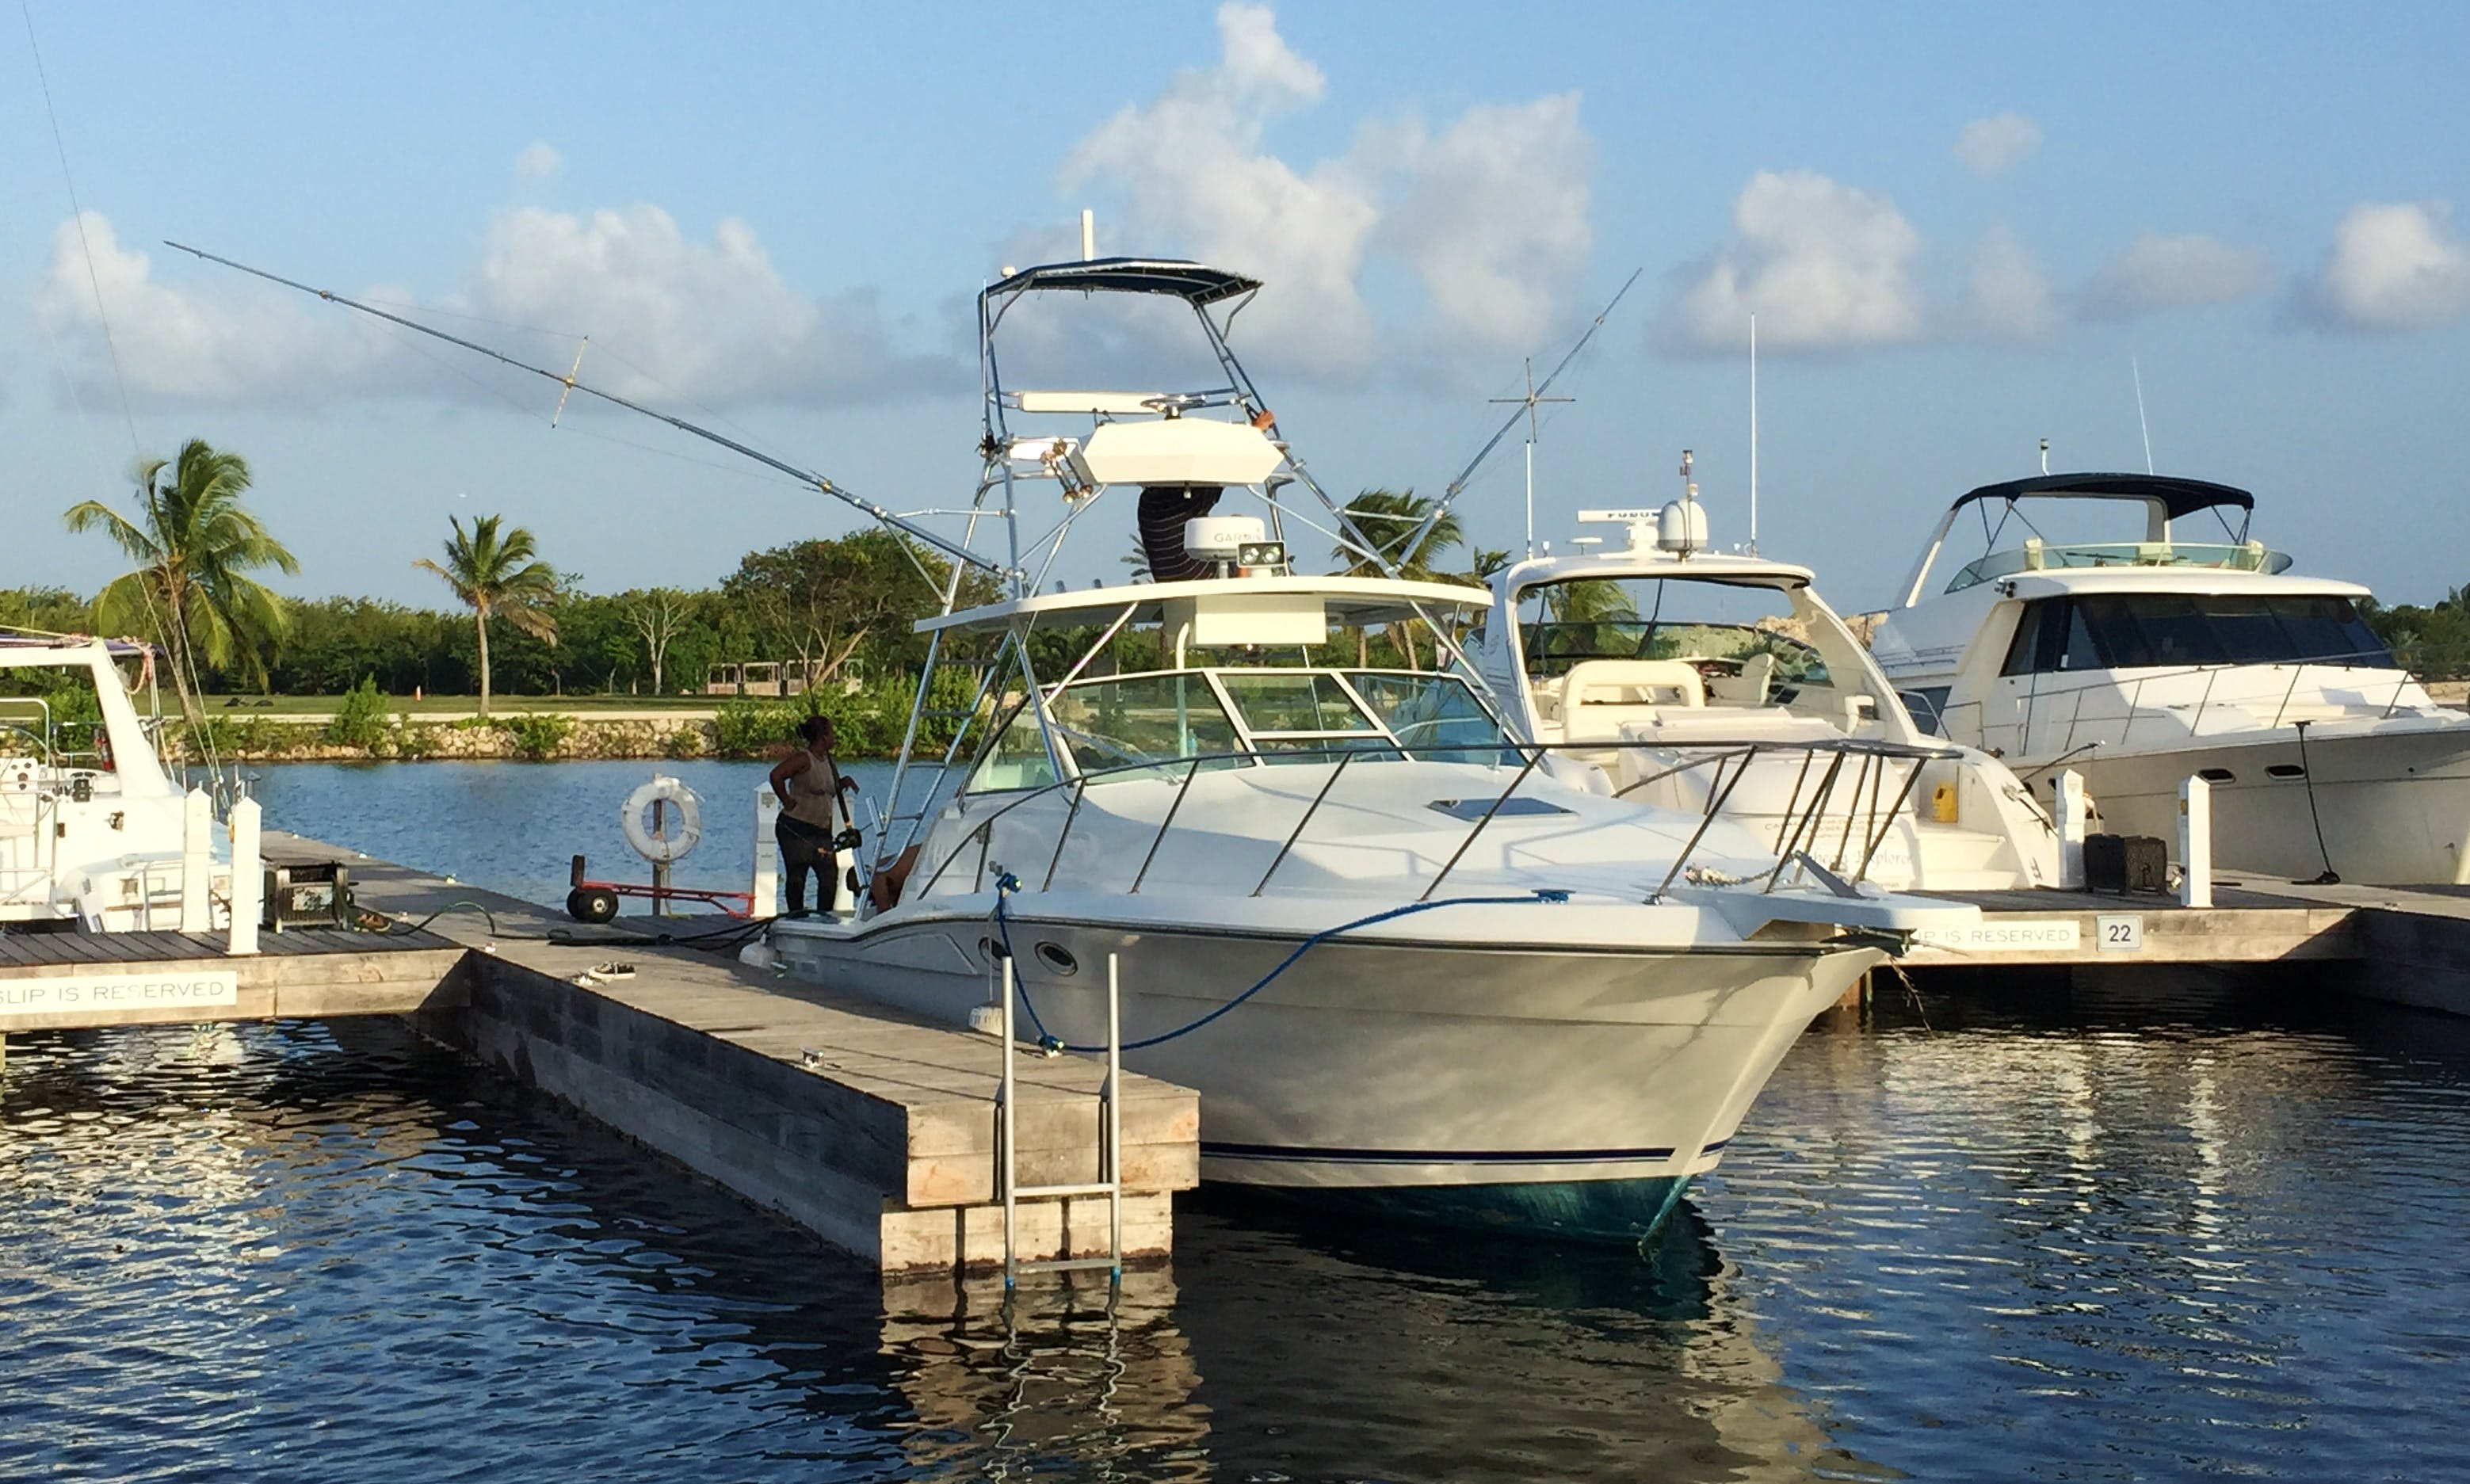 38' Wellcraft Boat Charter in Cayman Islands